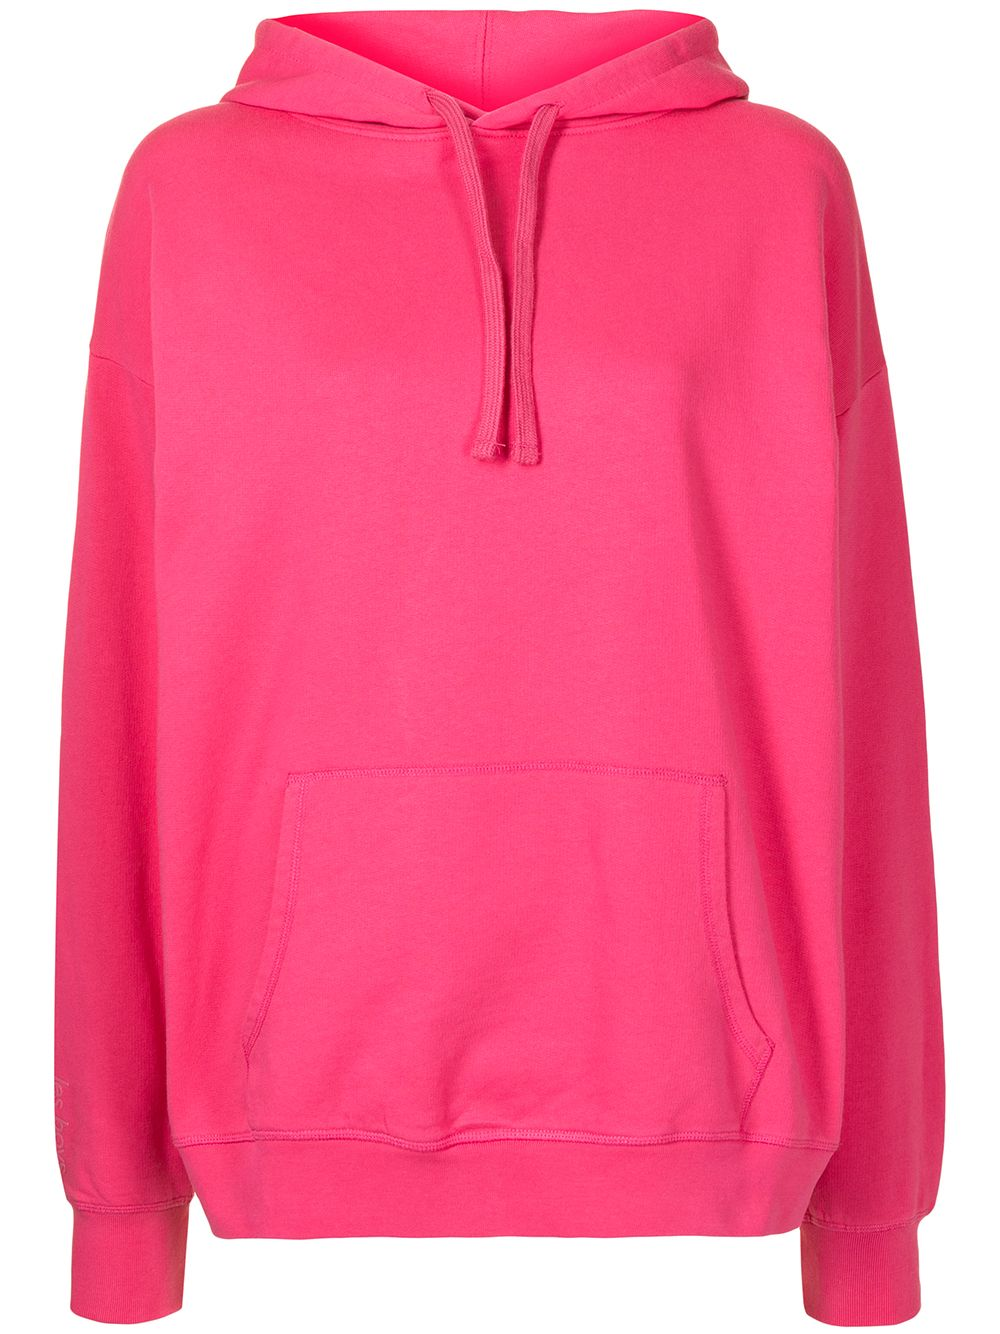 Les Girls Les Boys loopback hoodie - Pink von Les Girls Les Boys